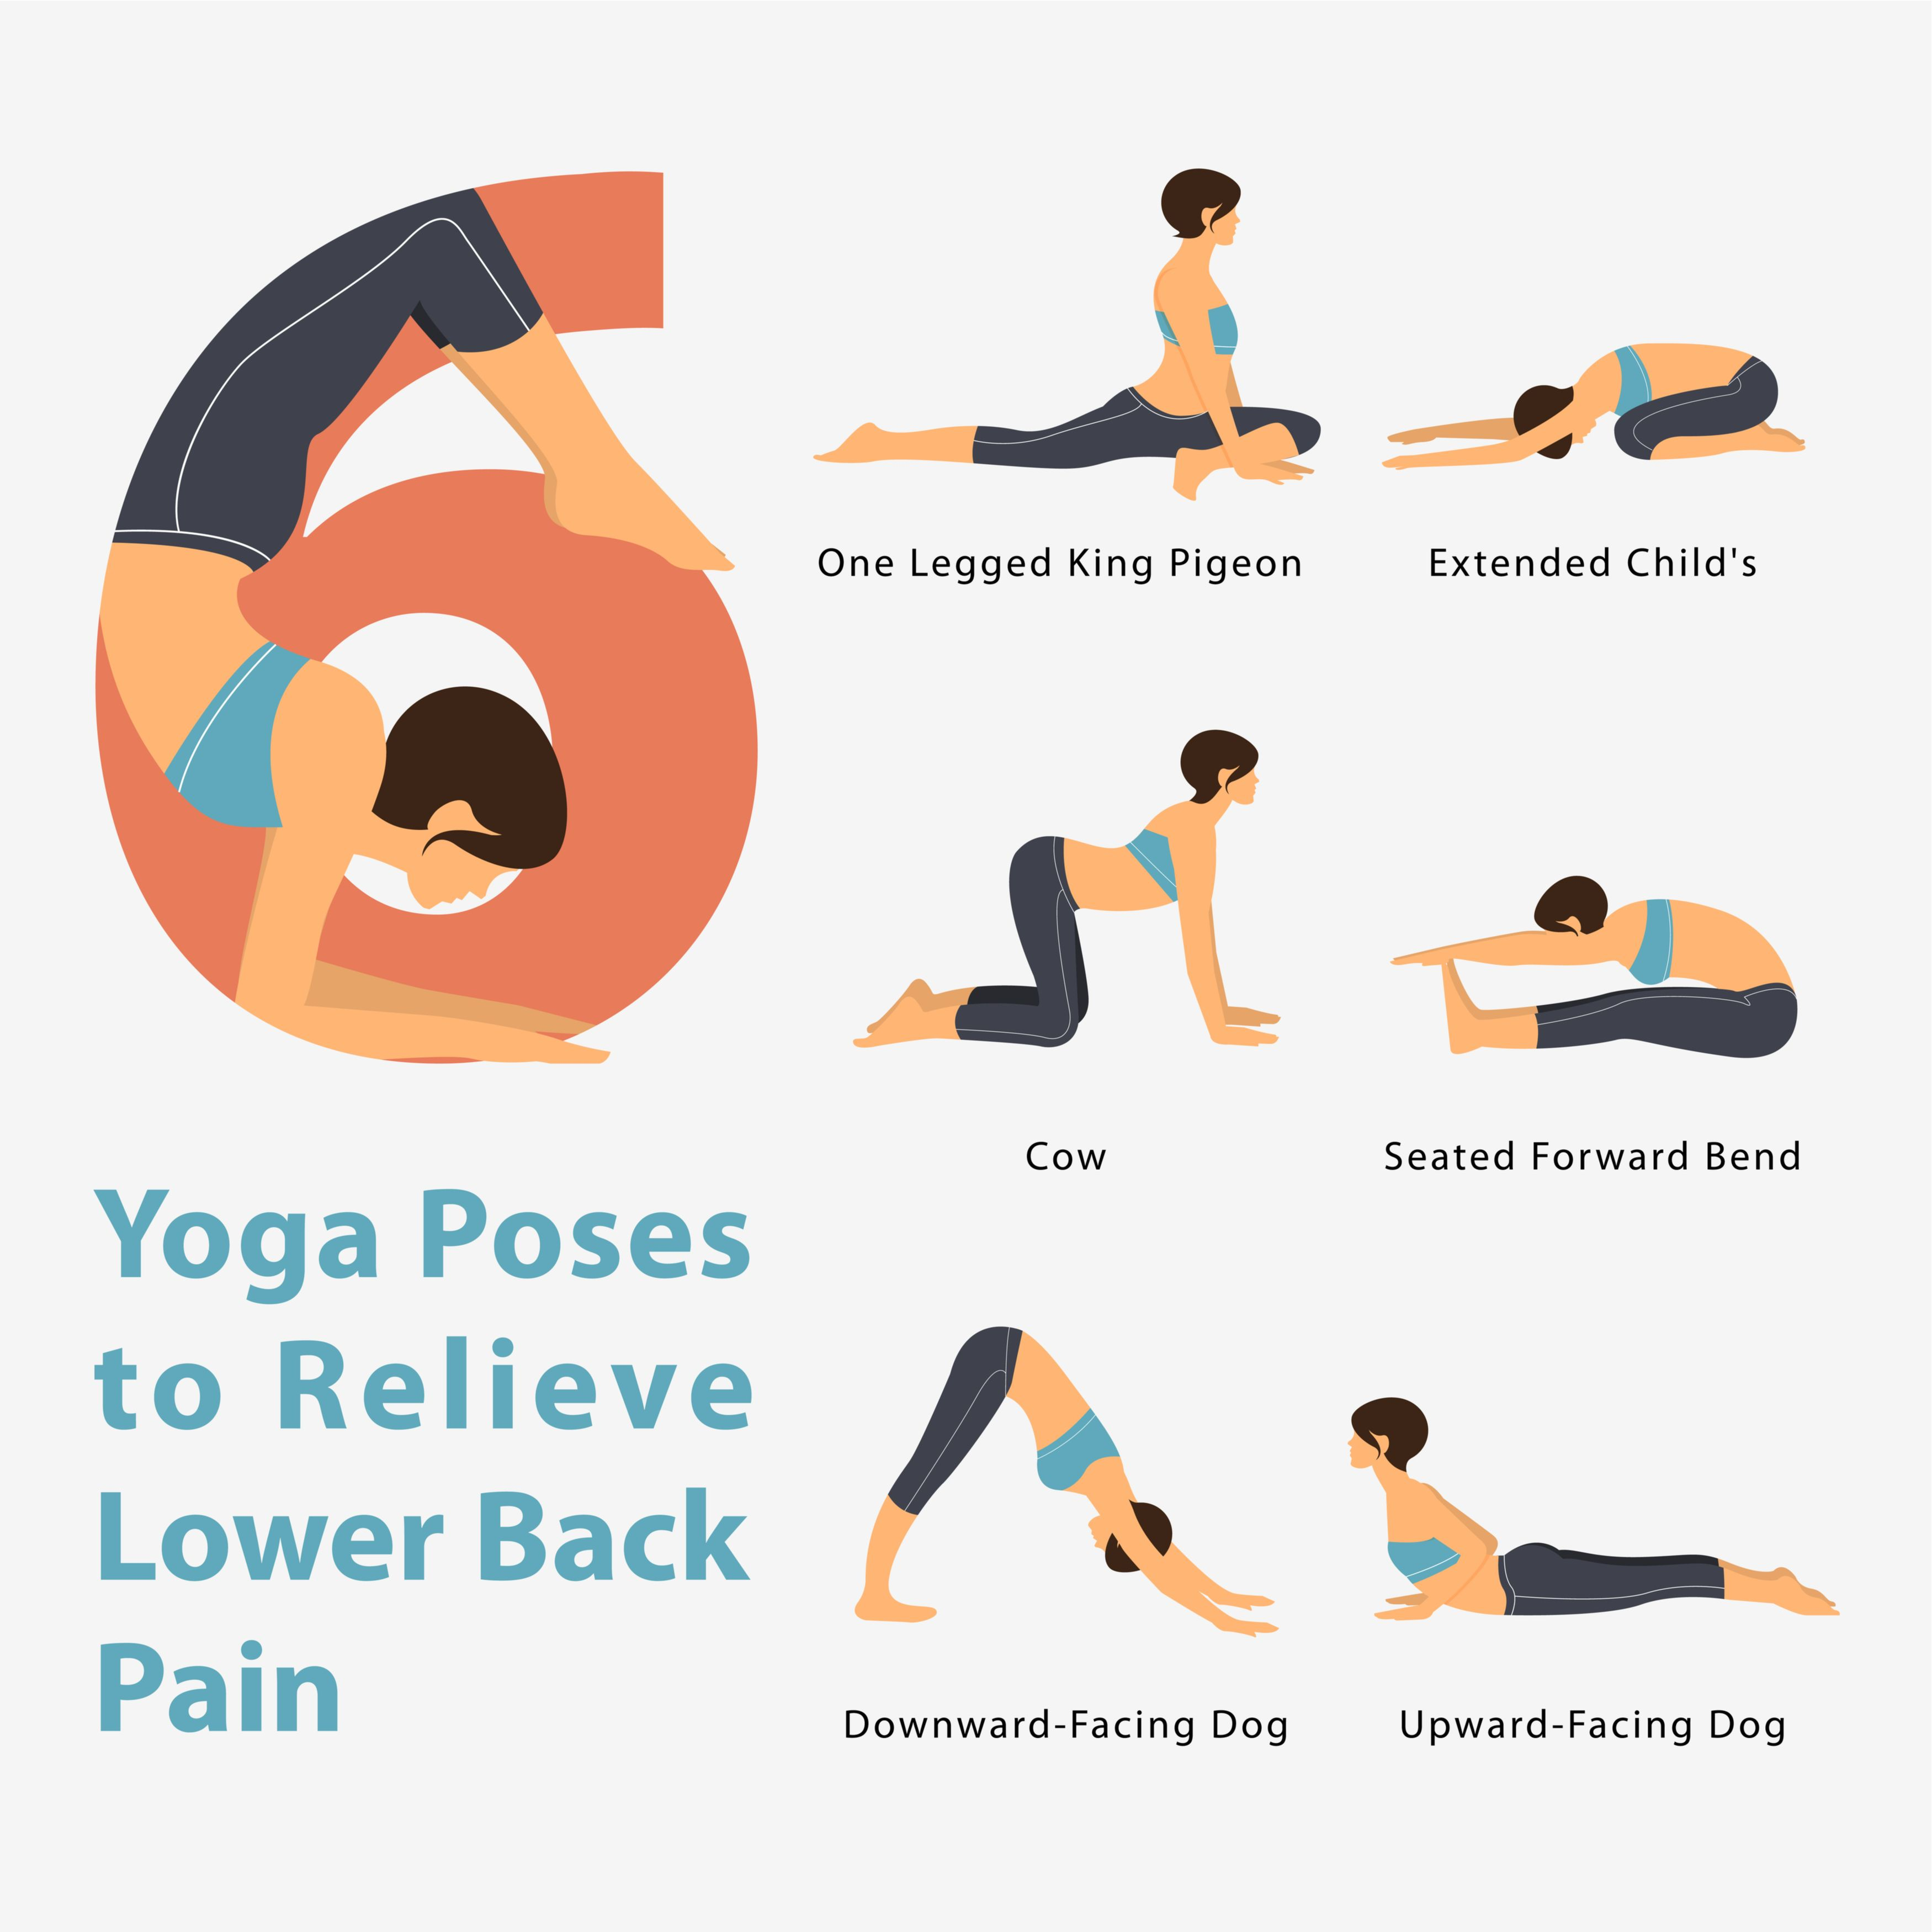 26+ Yoga poses to relieve back pain ideas in 2021